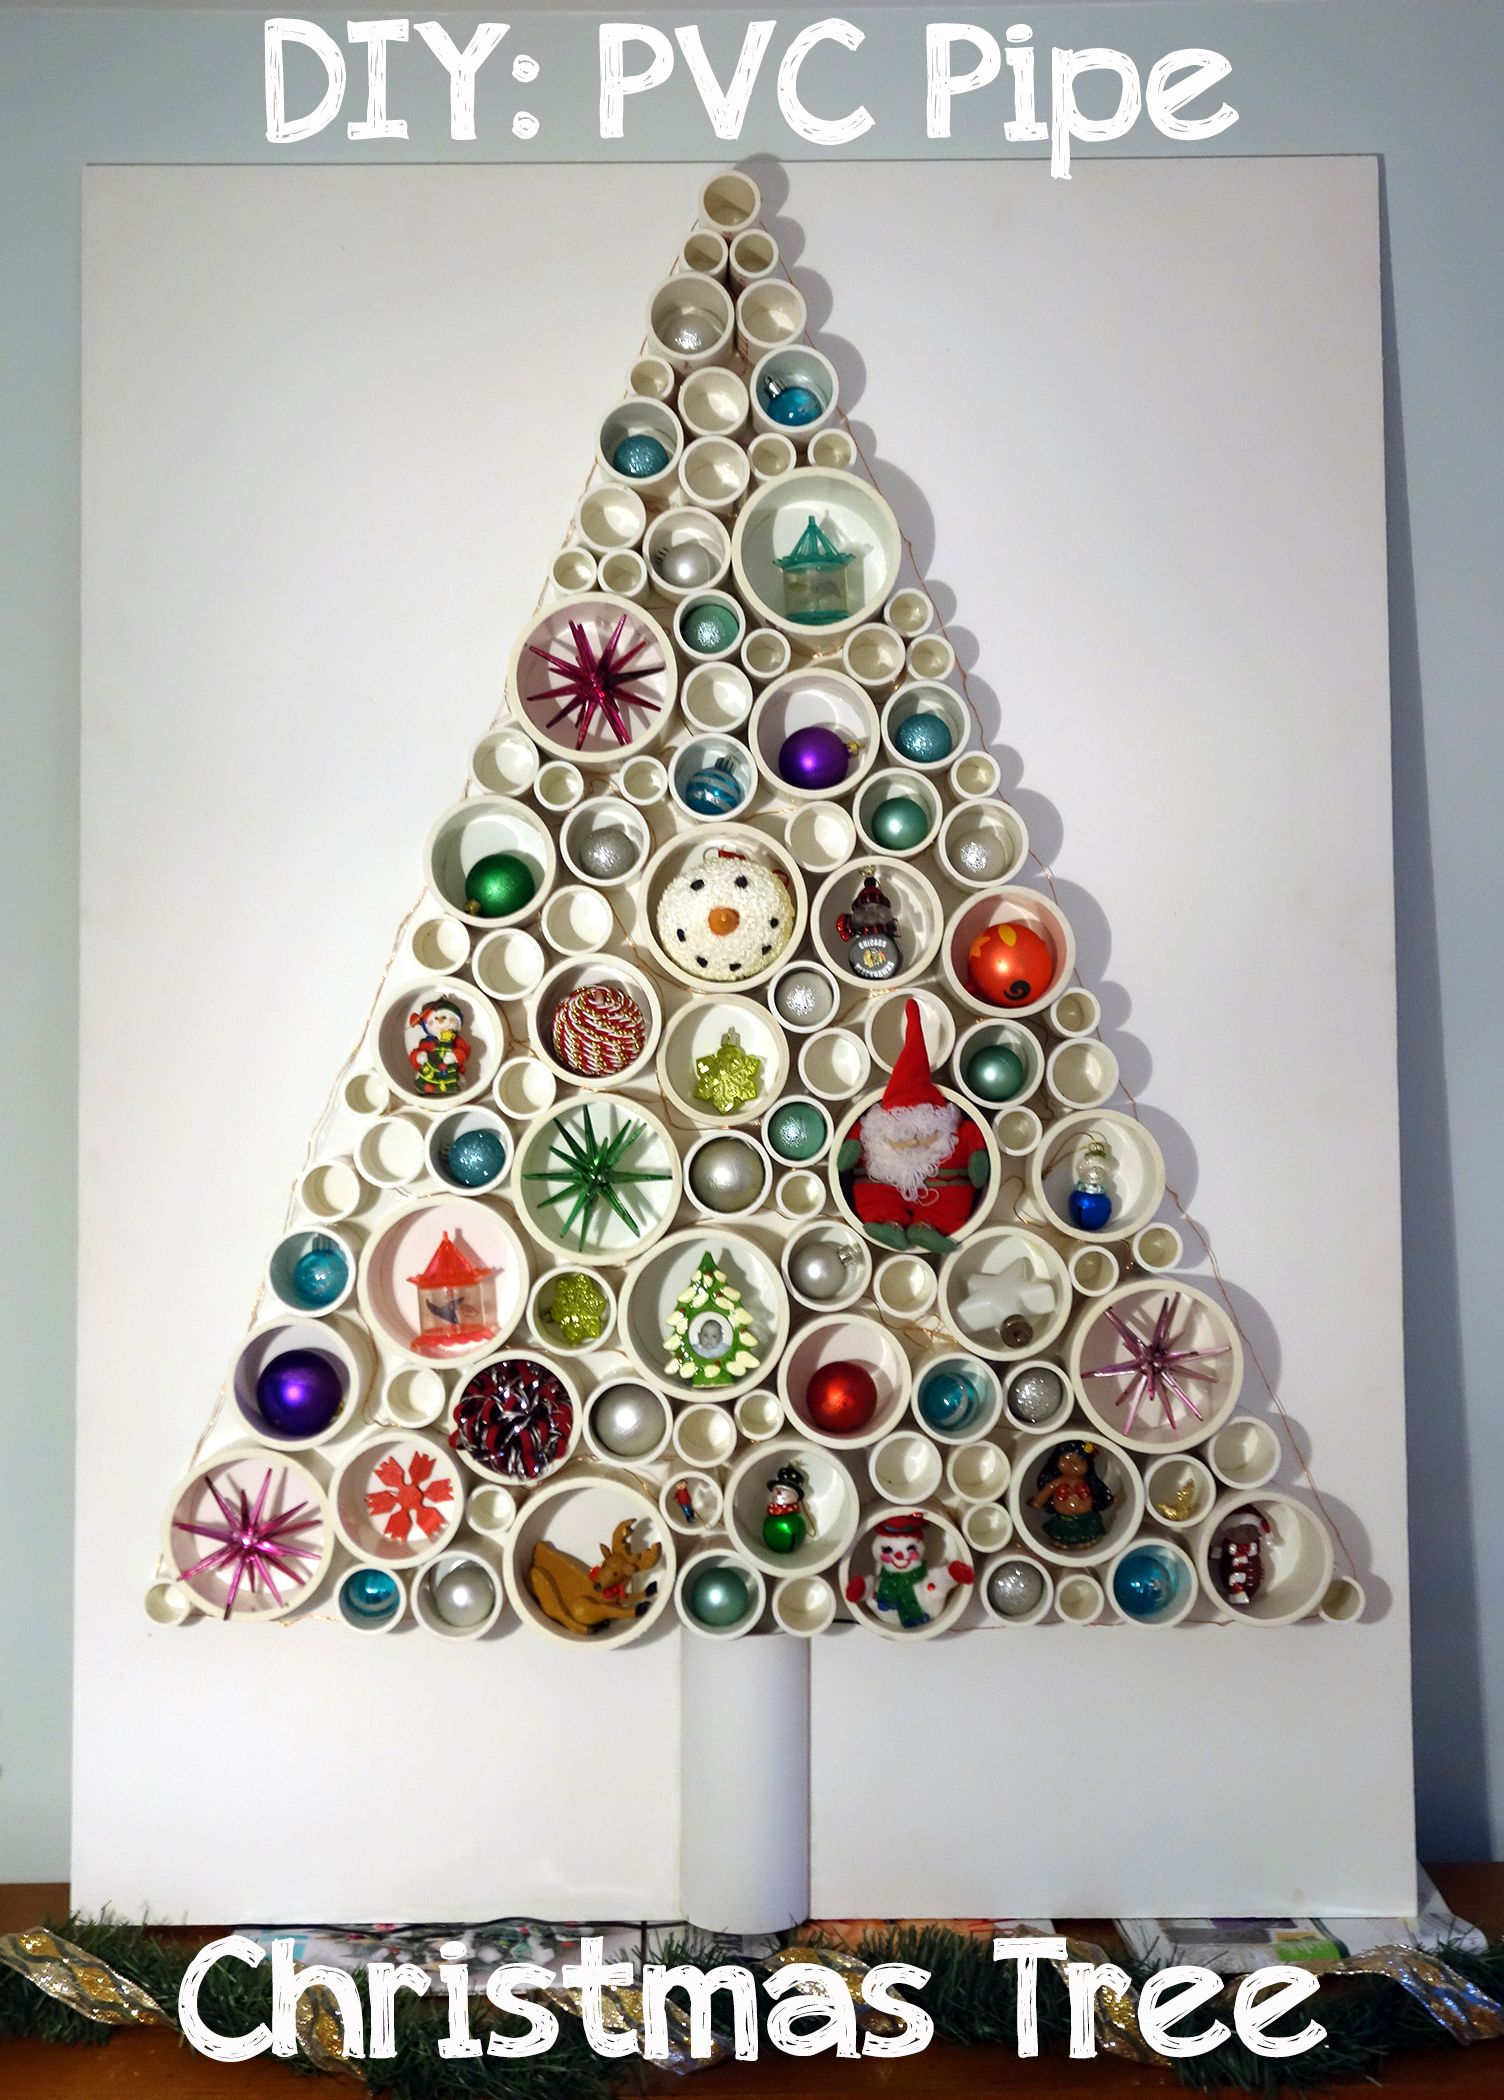 DIY PVC Pipe Christmas Tree Pvc pipe, Pipes and